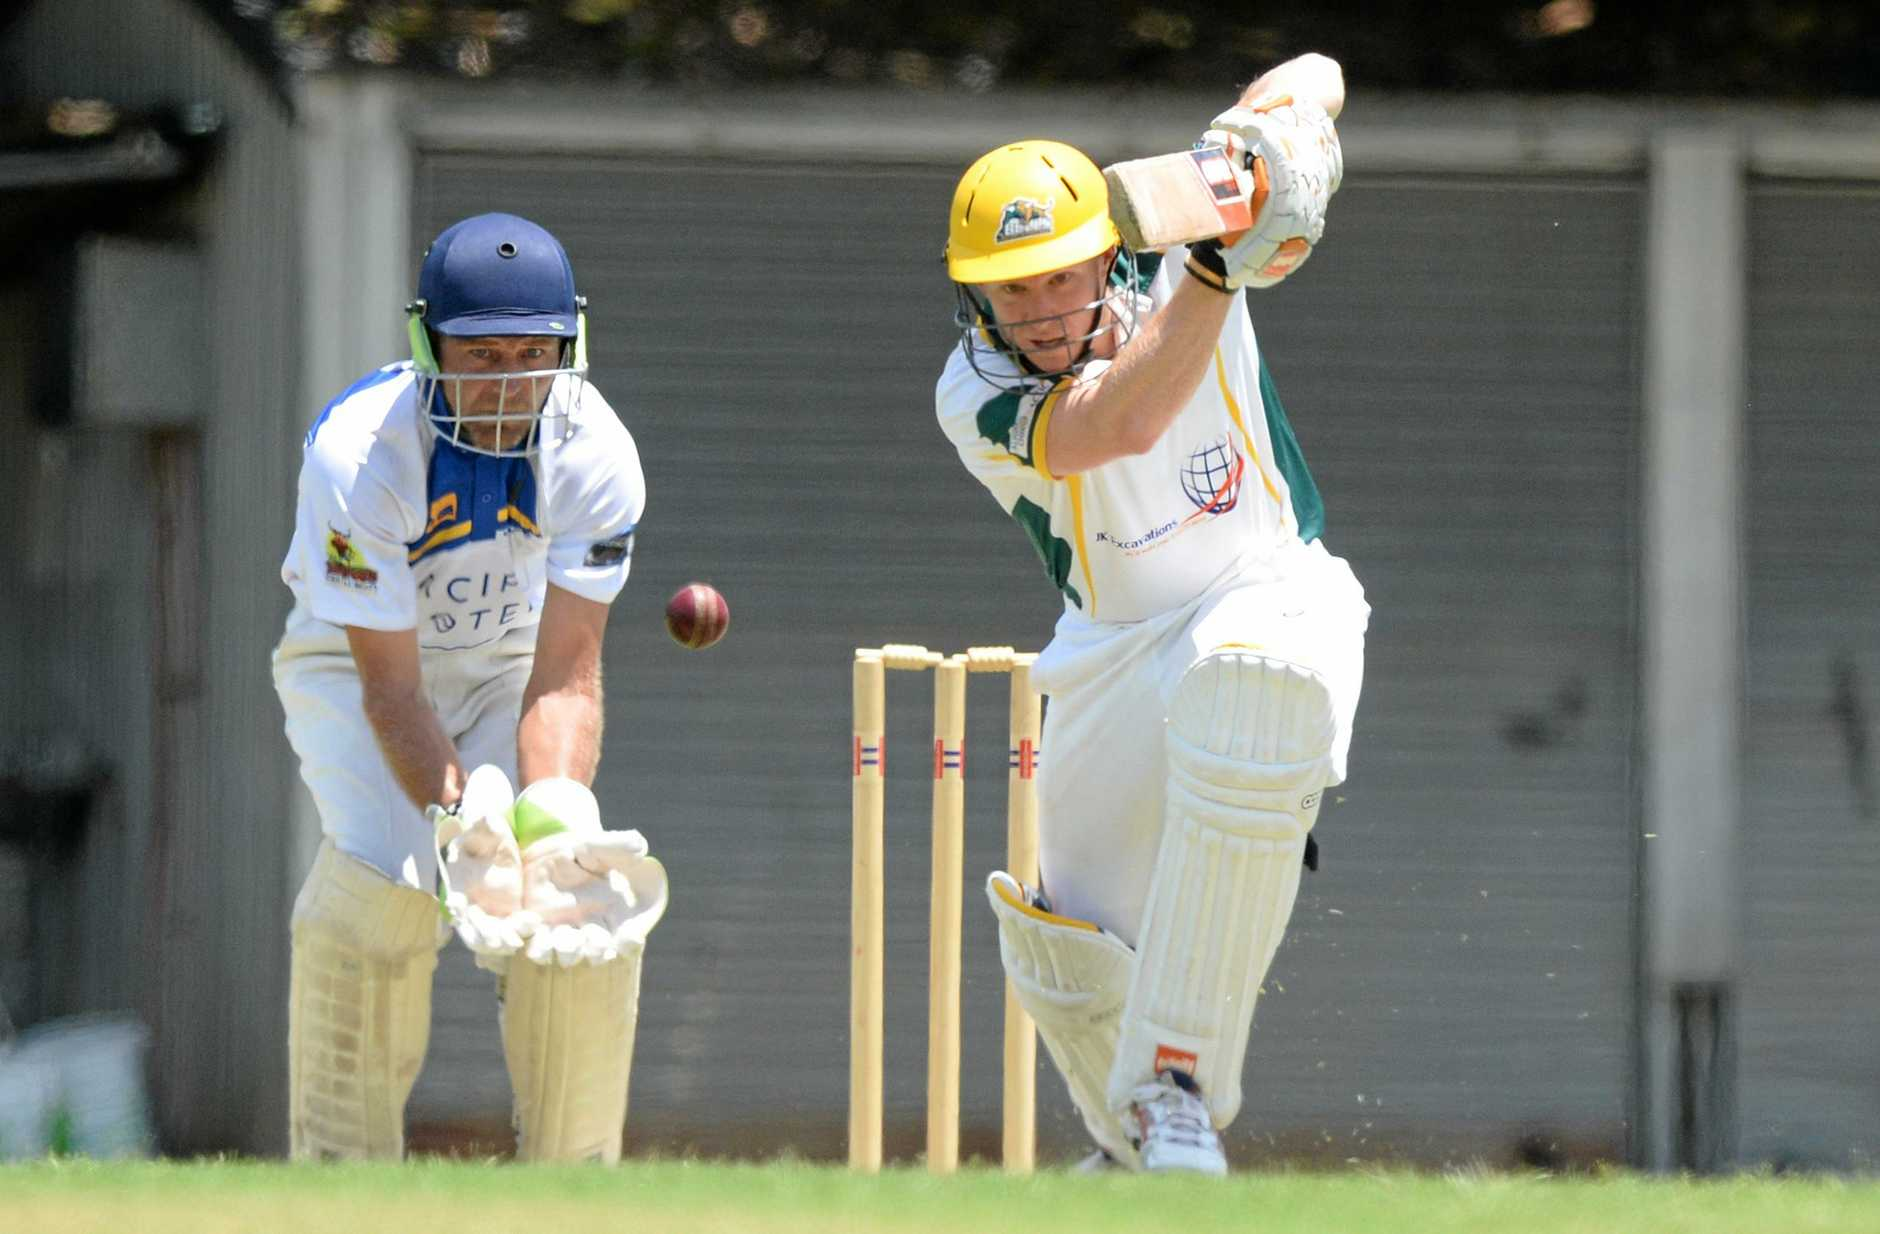 Gracemere player Todd Harmsworth in the cricket game against Capricorn Coast Parkhana